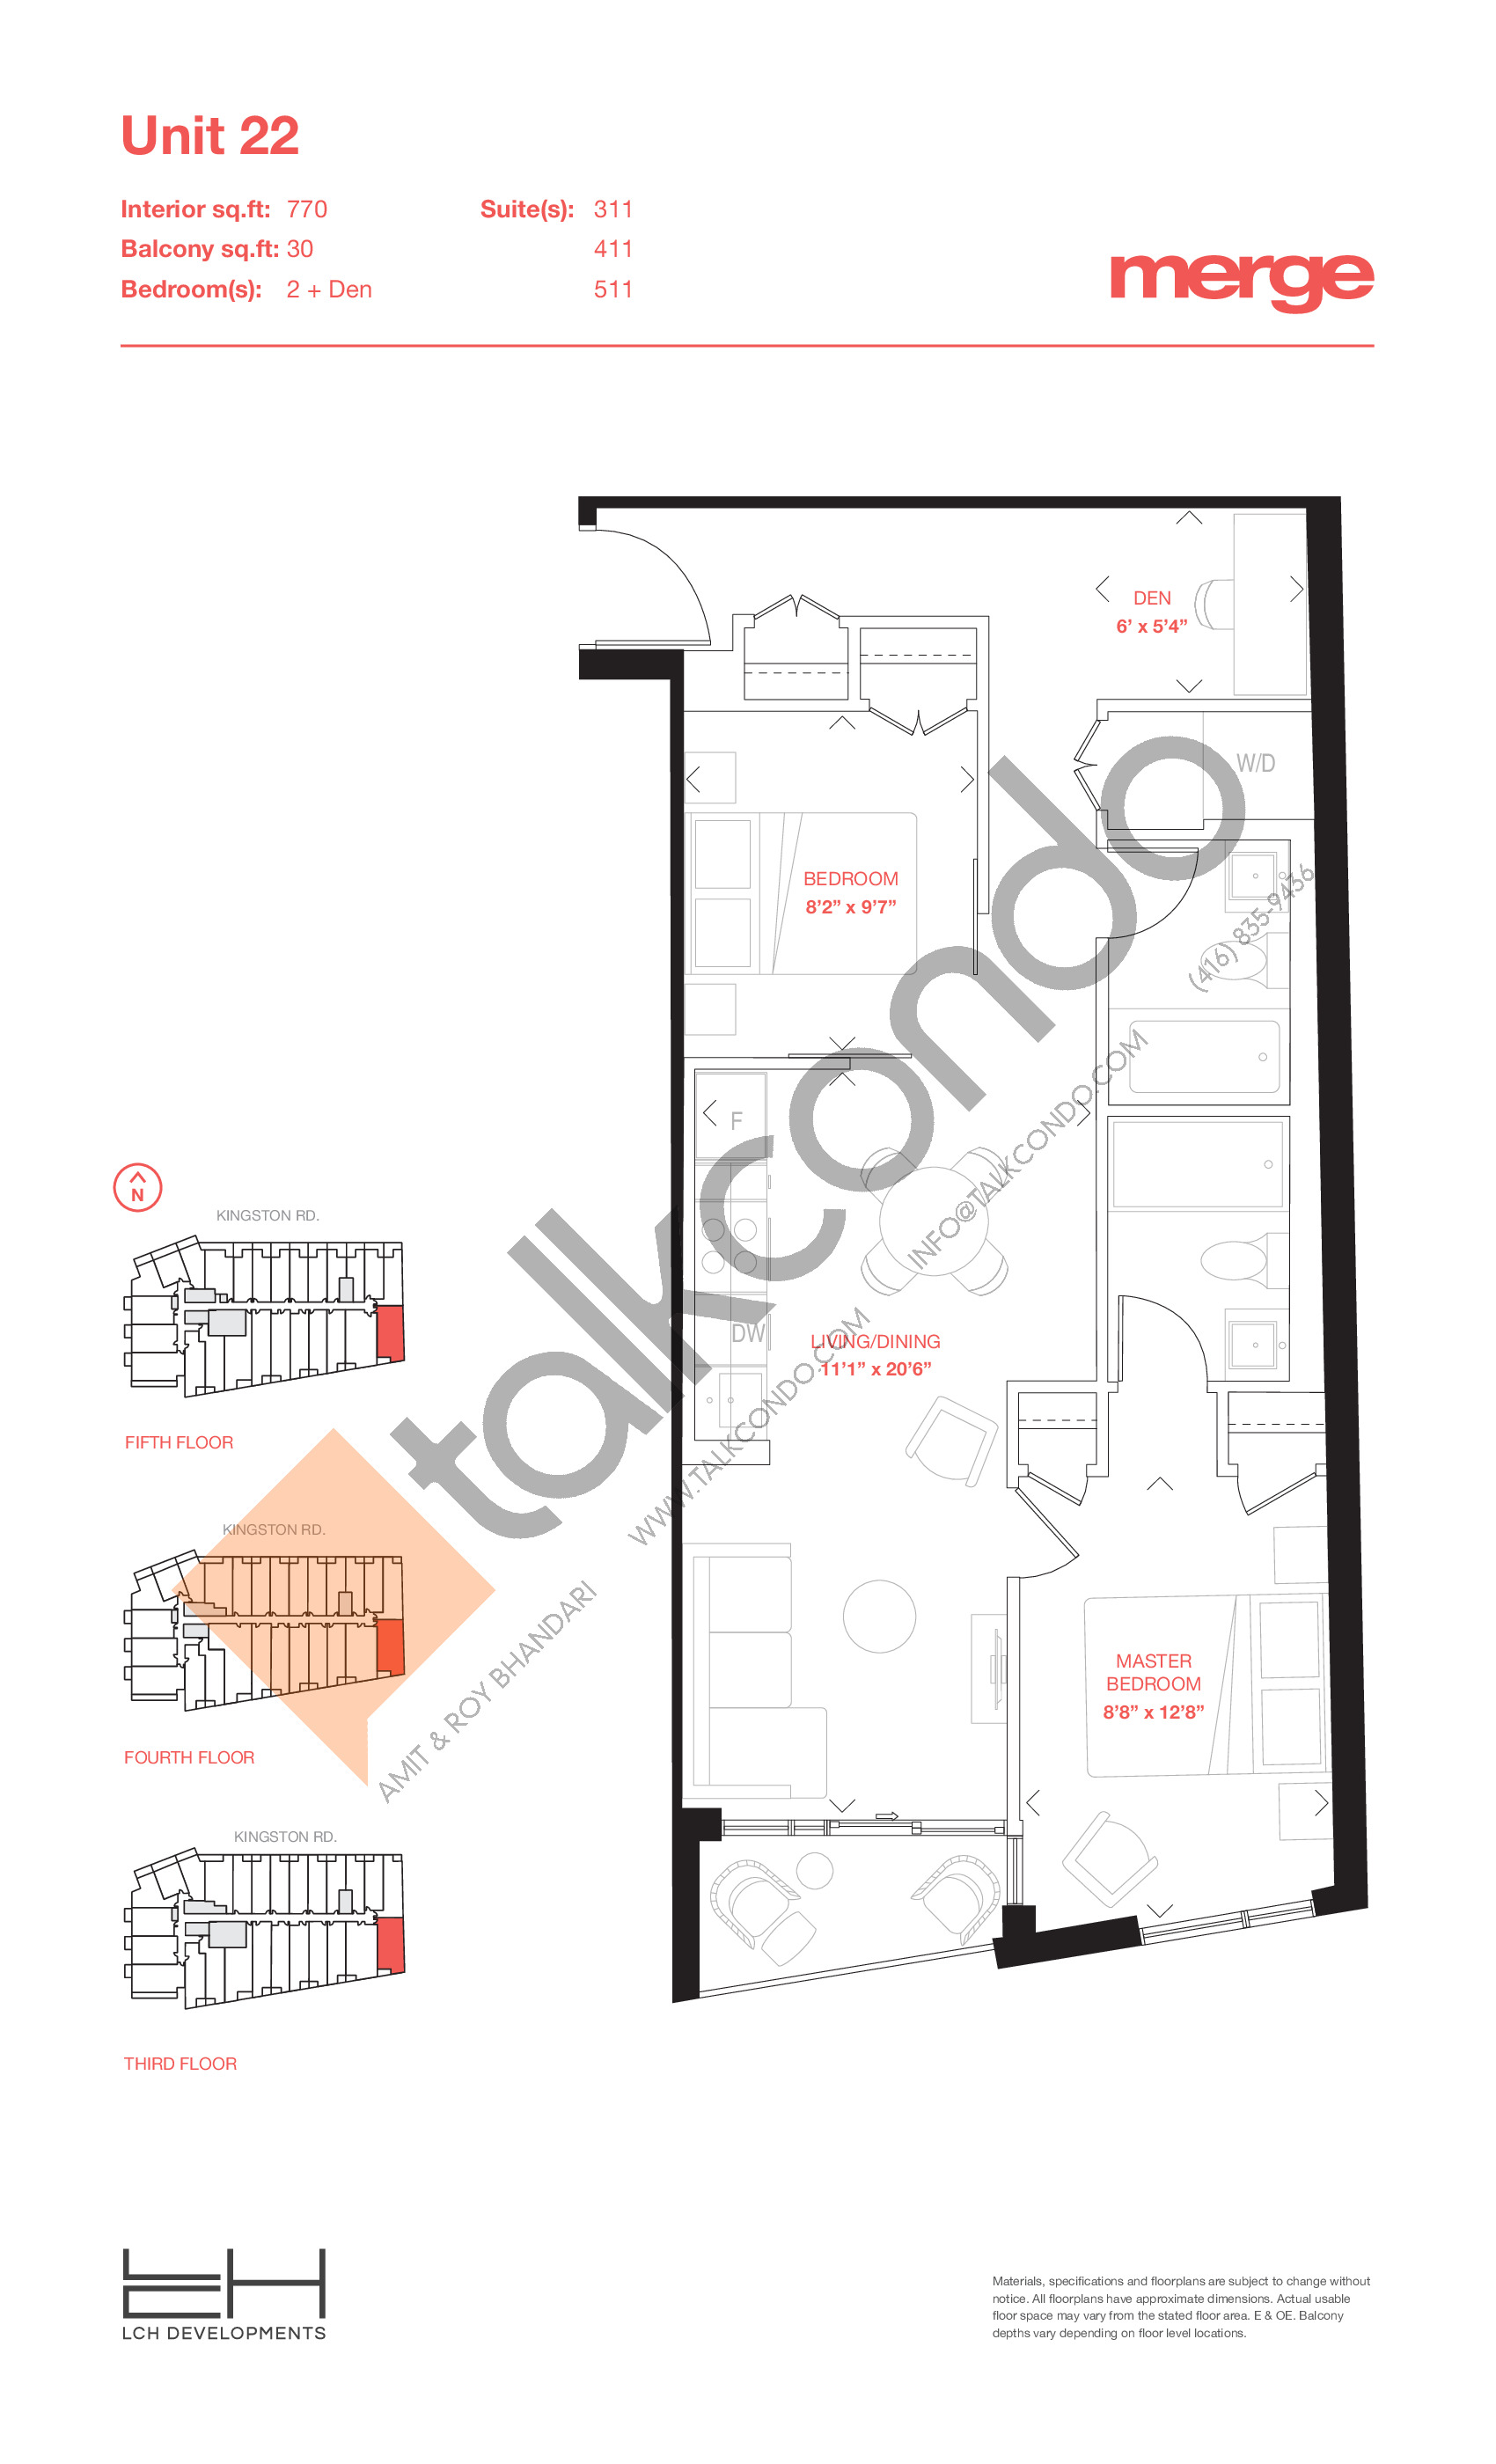 Unit 22 - Tower Floor Plan at Merge Condos - 770 sq.ft